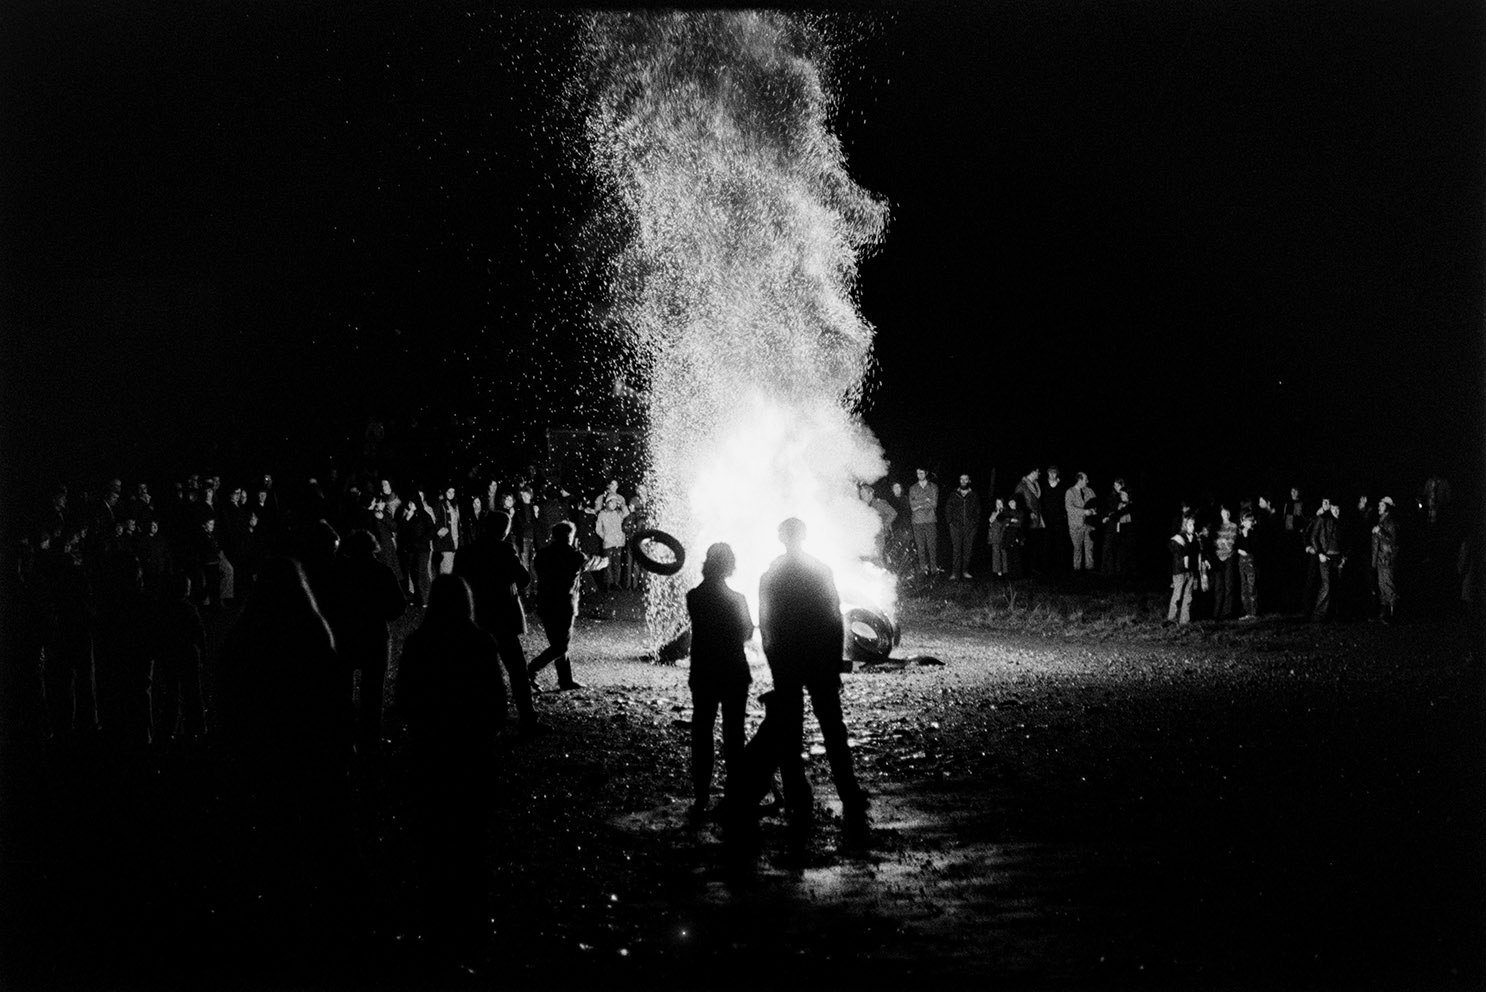 Burning tyres, Hatherleigh Carnival, November 1975